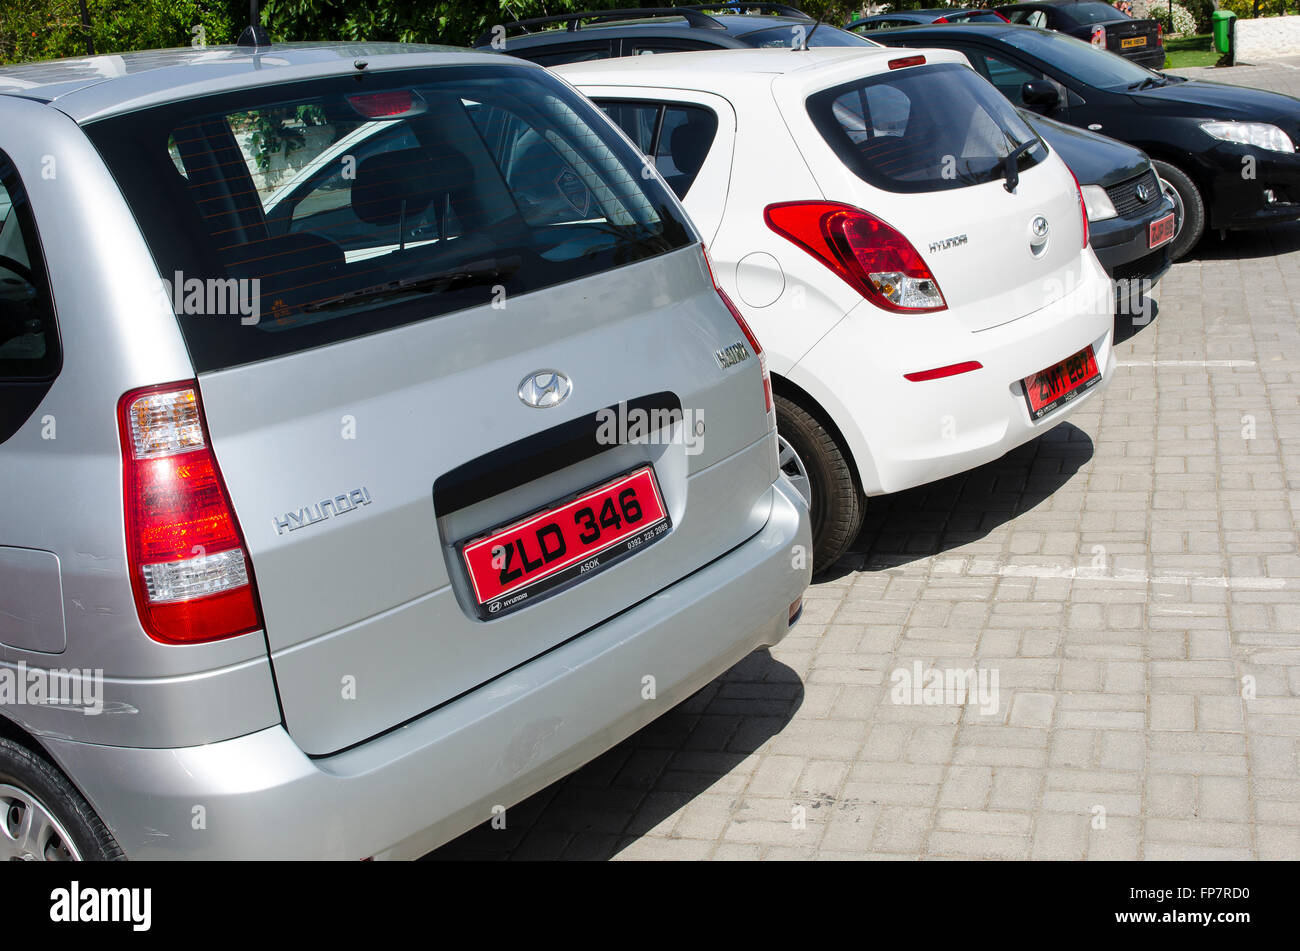 Red number plates on the back of cars parked in a car park in the city of Kyrenia in Northern Cyprus. - Stock Image